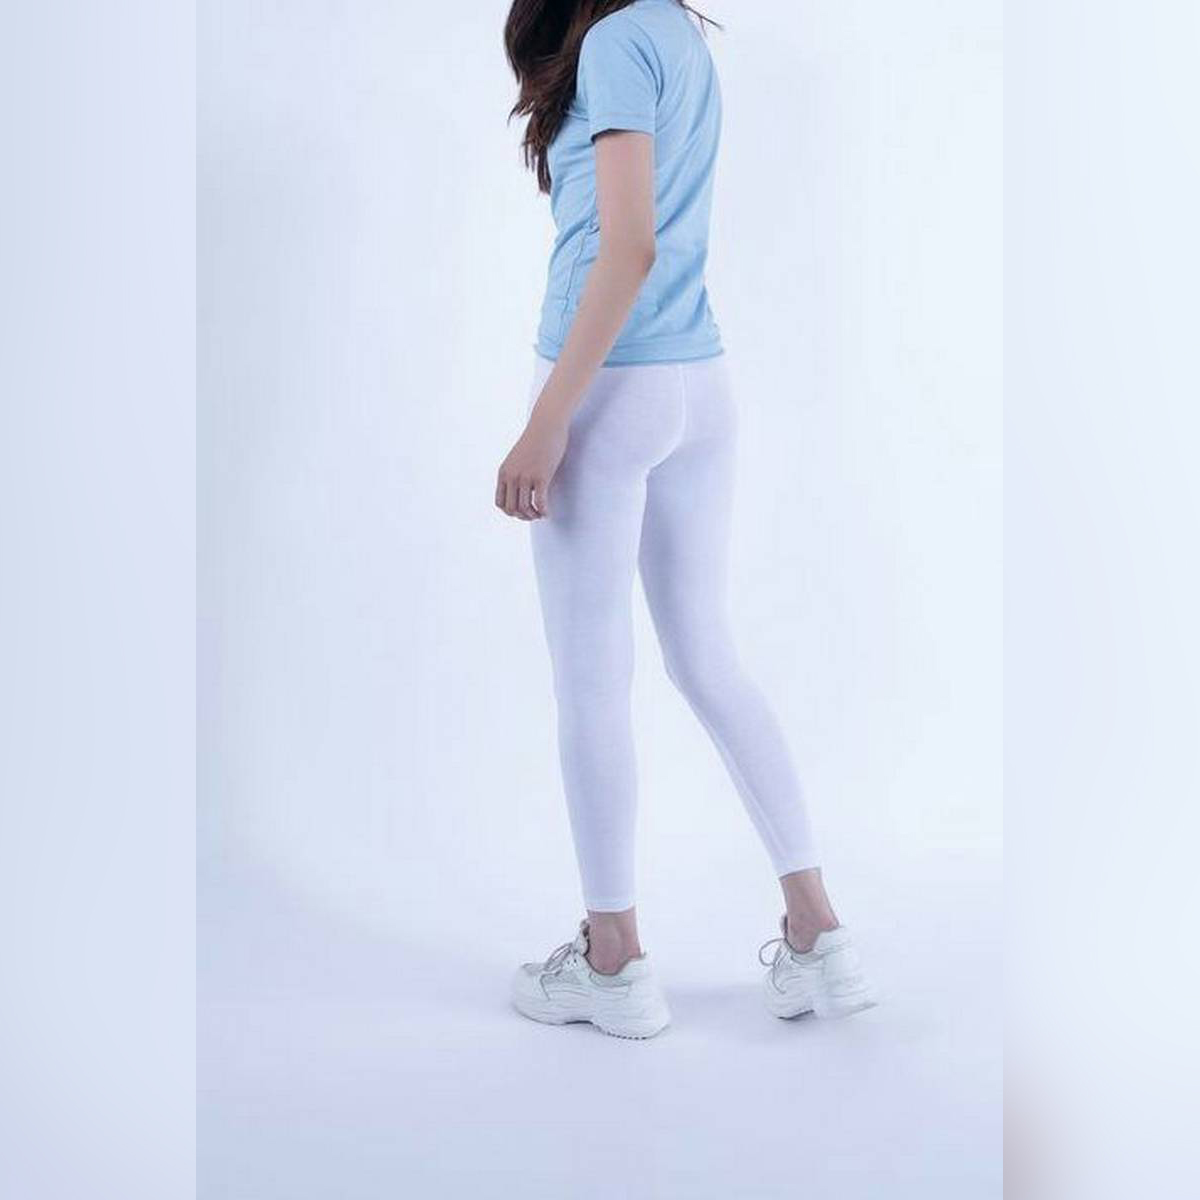 Ladies White Stretchy Tights